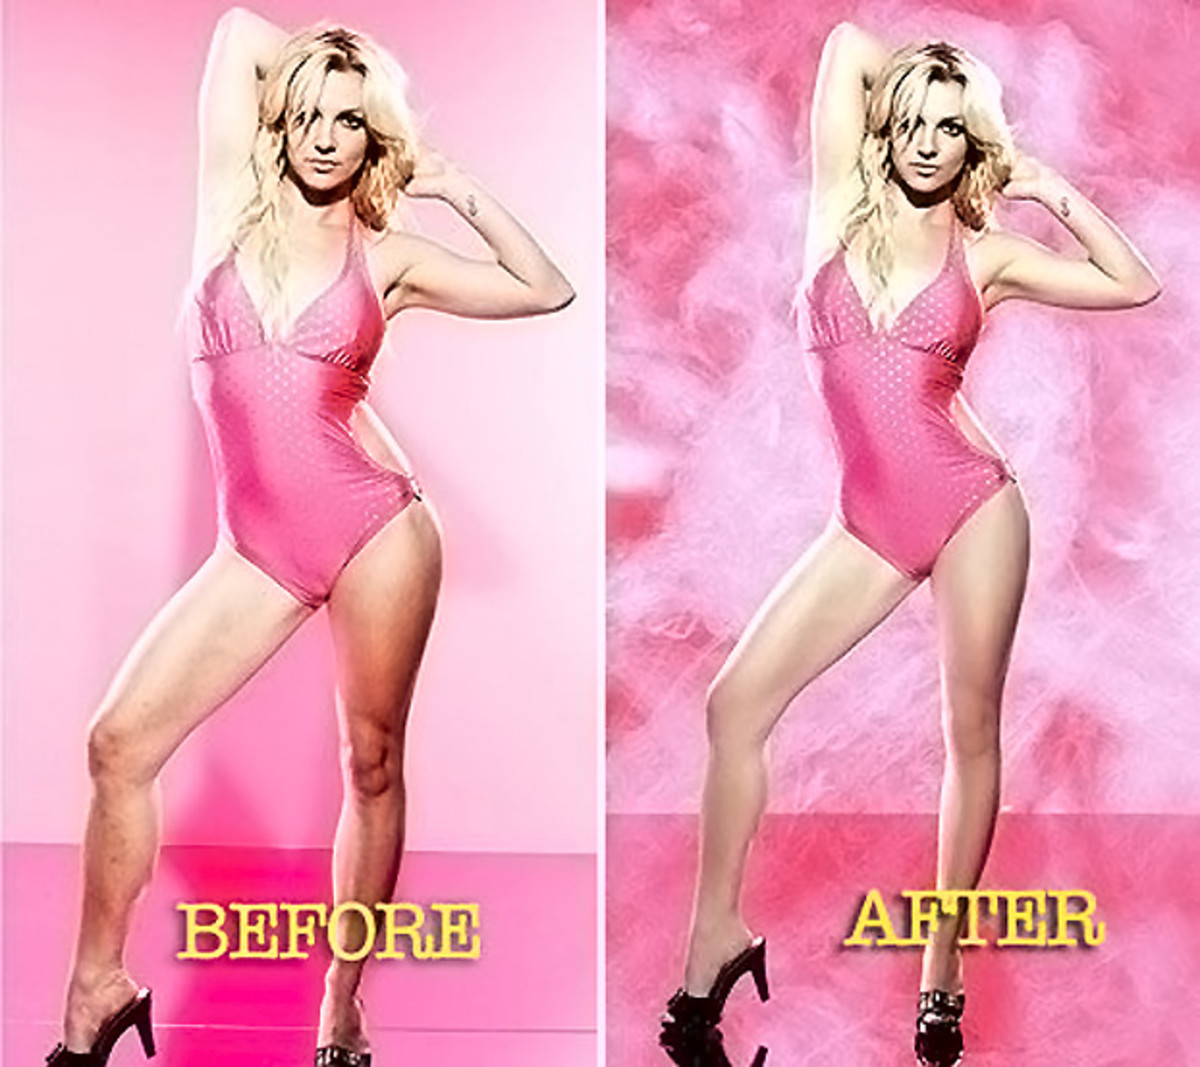 Remember when Britney released these photos?